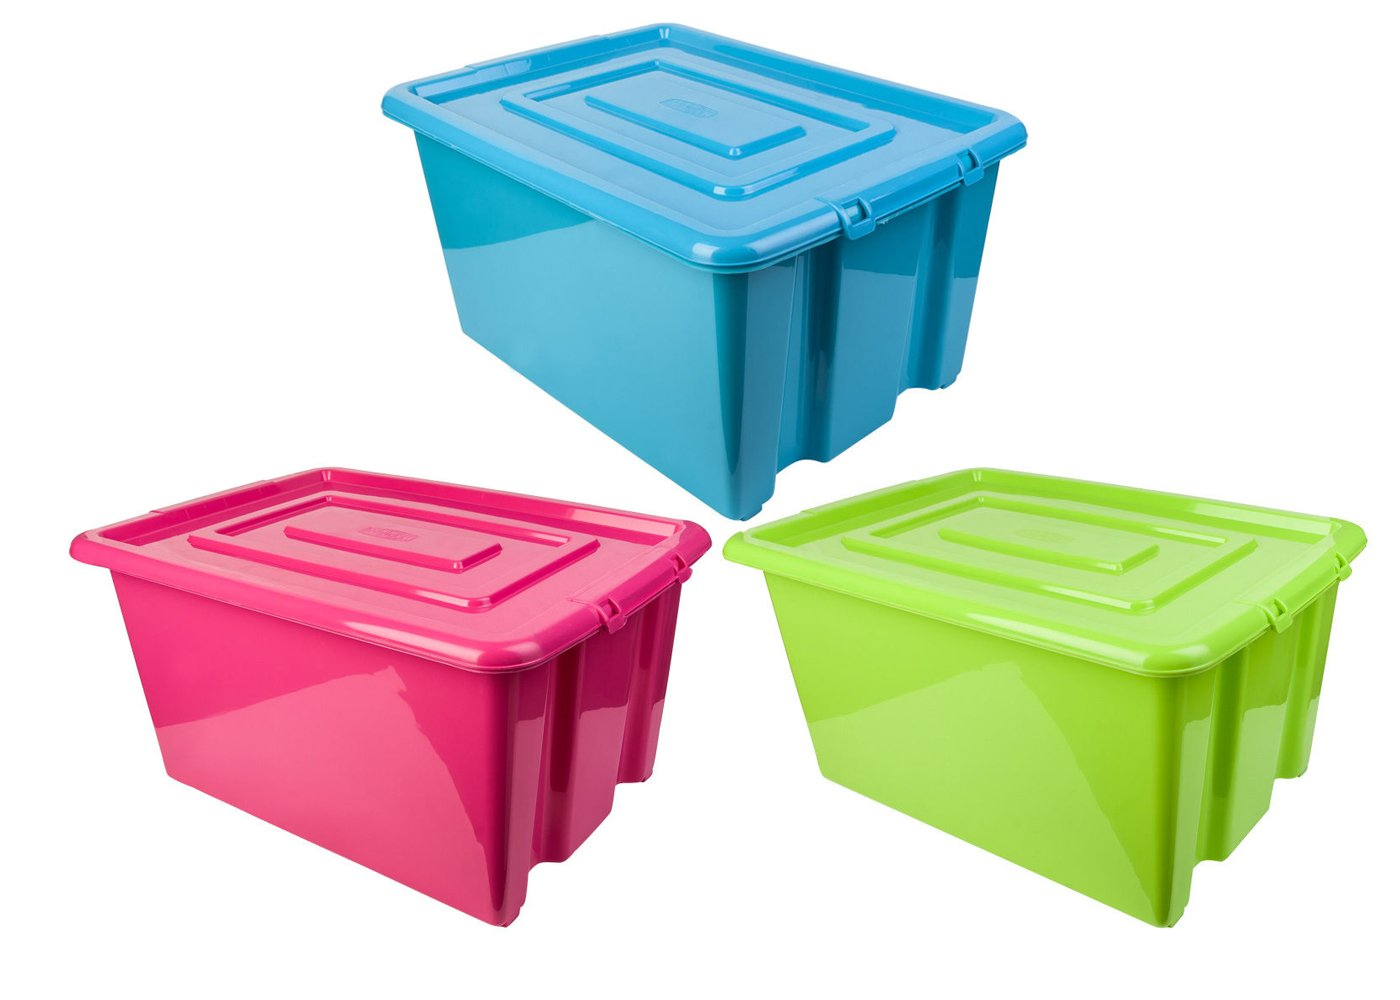 Colourful Whitefurze Plastic Stackable Container Medium Storage Box With Lid 32L (Bright Green) Amazon.co.uk Kitchen u0026 Home  sc 1 st  Amazon UK & Colourful Whitefurze Plastic Stackable Container Medium Storage Box ...